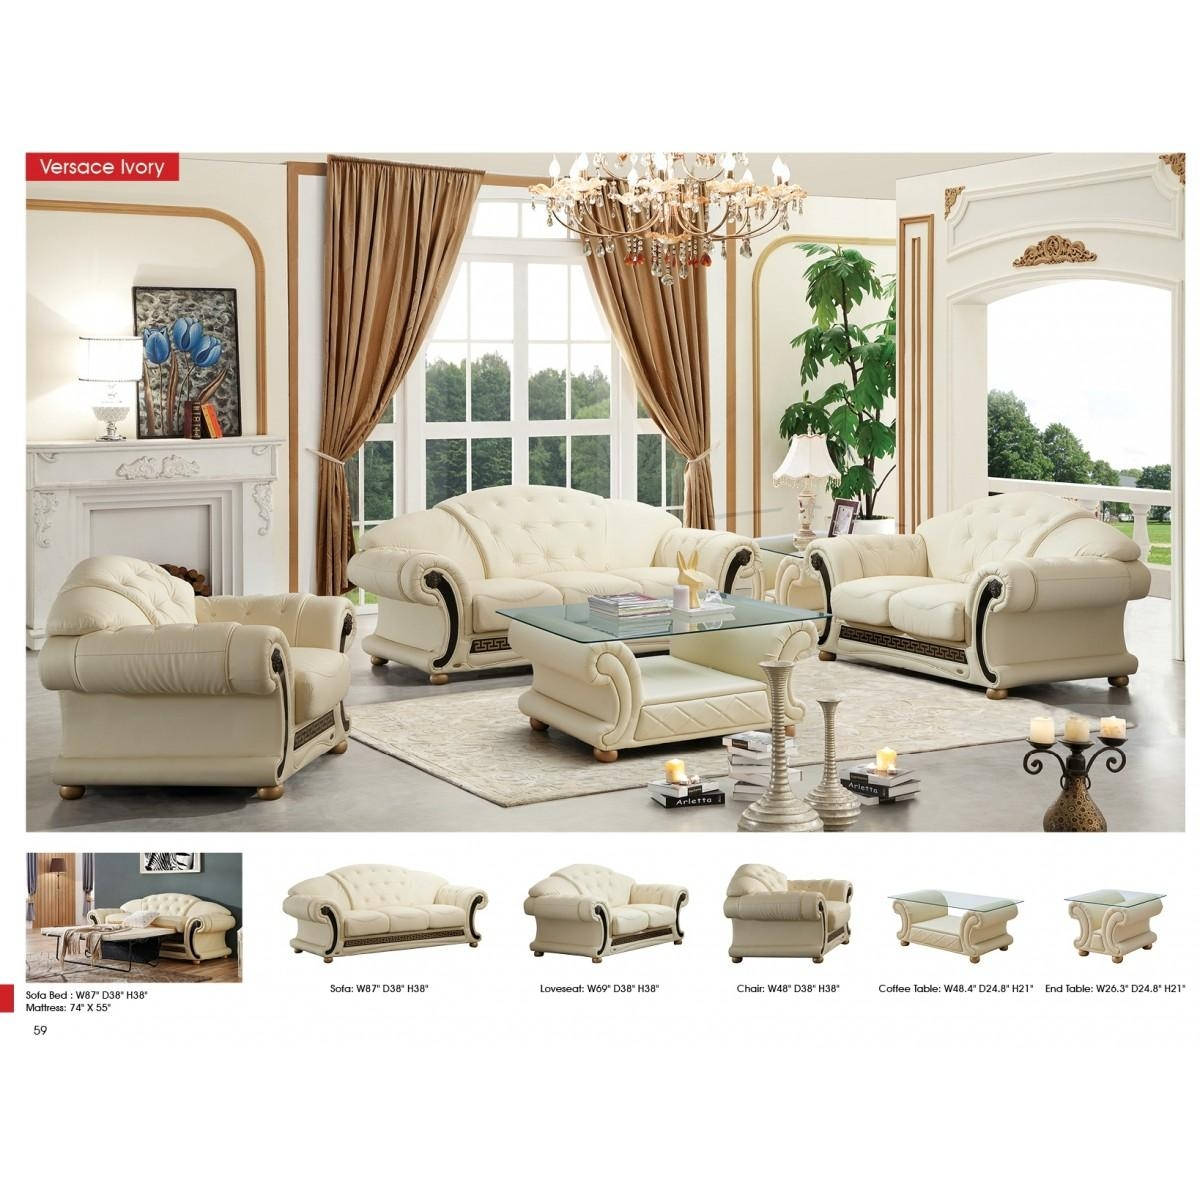 Contemporary & Luxury Furniture; Living Room, Bedroom,la Furniture Inside Cleopatra Sofas (Image 11 of 20)